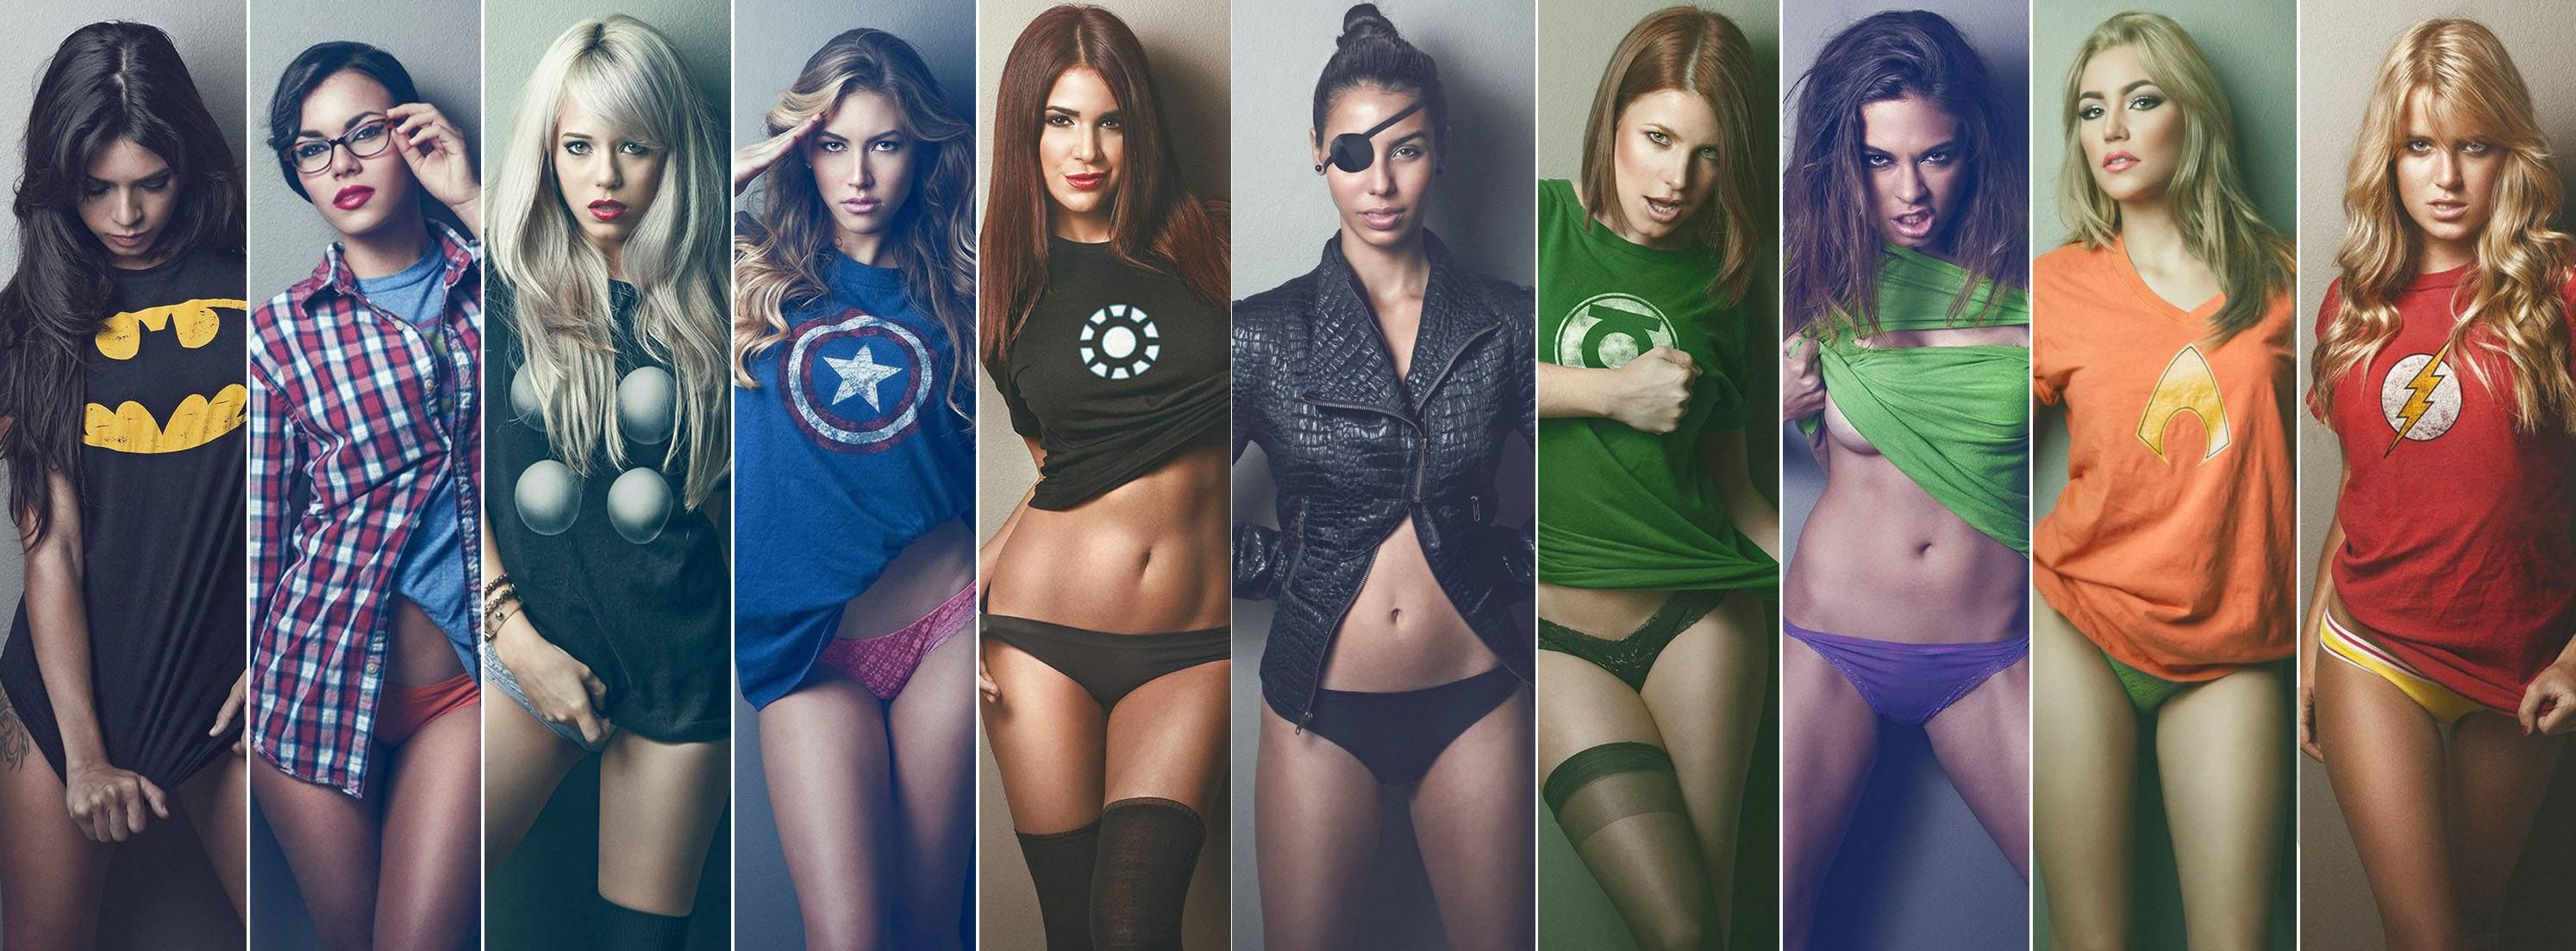 Really. Girls of marvel nude opinion